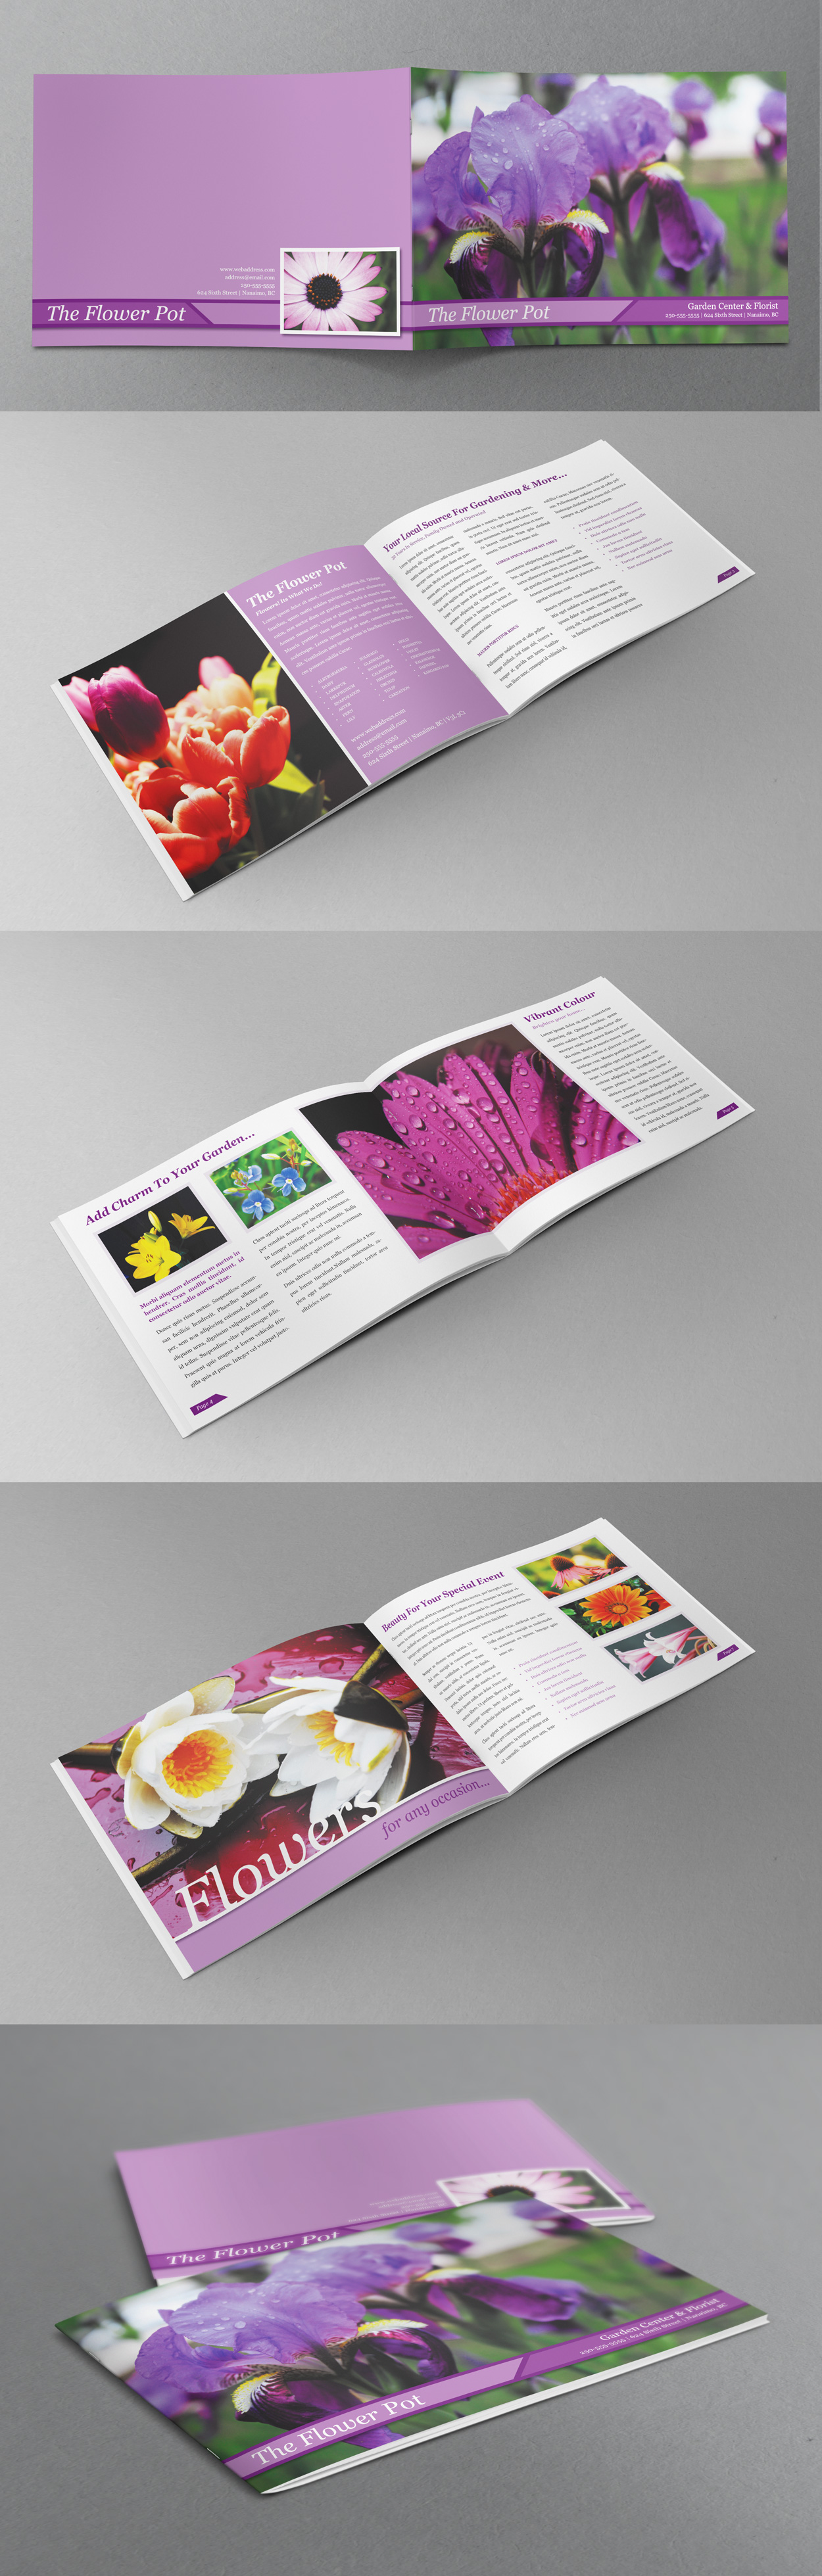 Free Booklet Template Impressive Flower Booklet Preview  Free Indesign Templates  Pinterest .